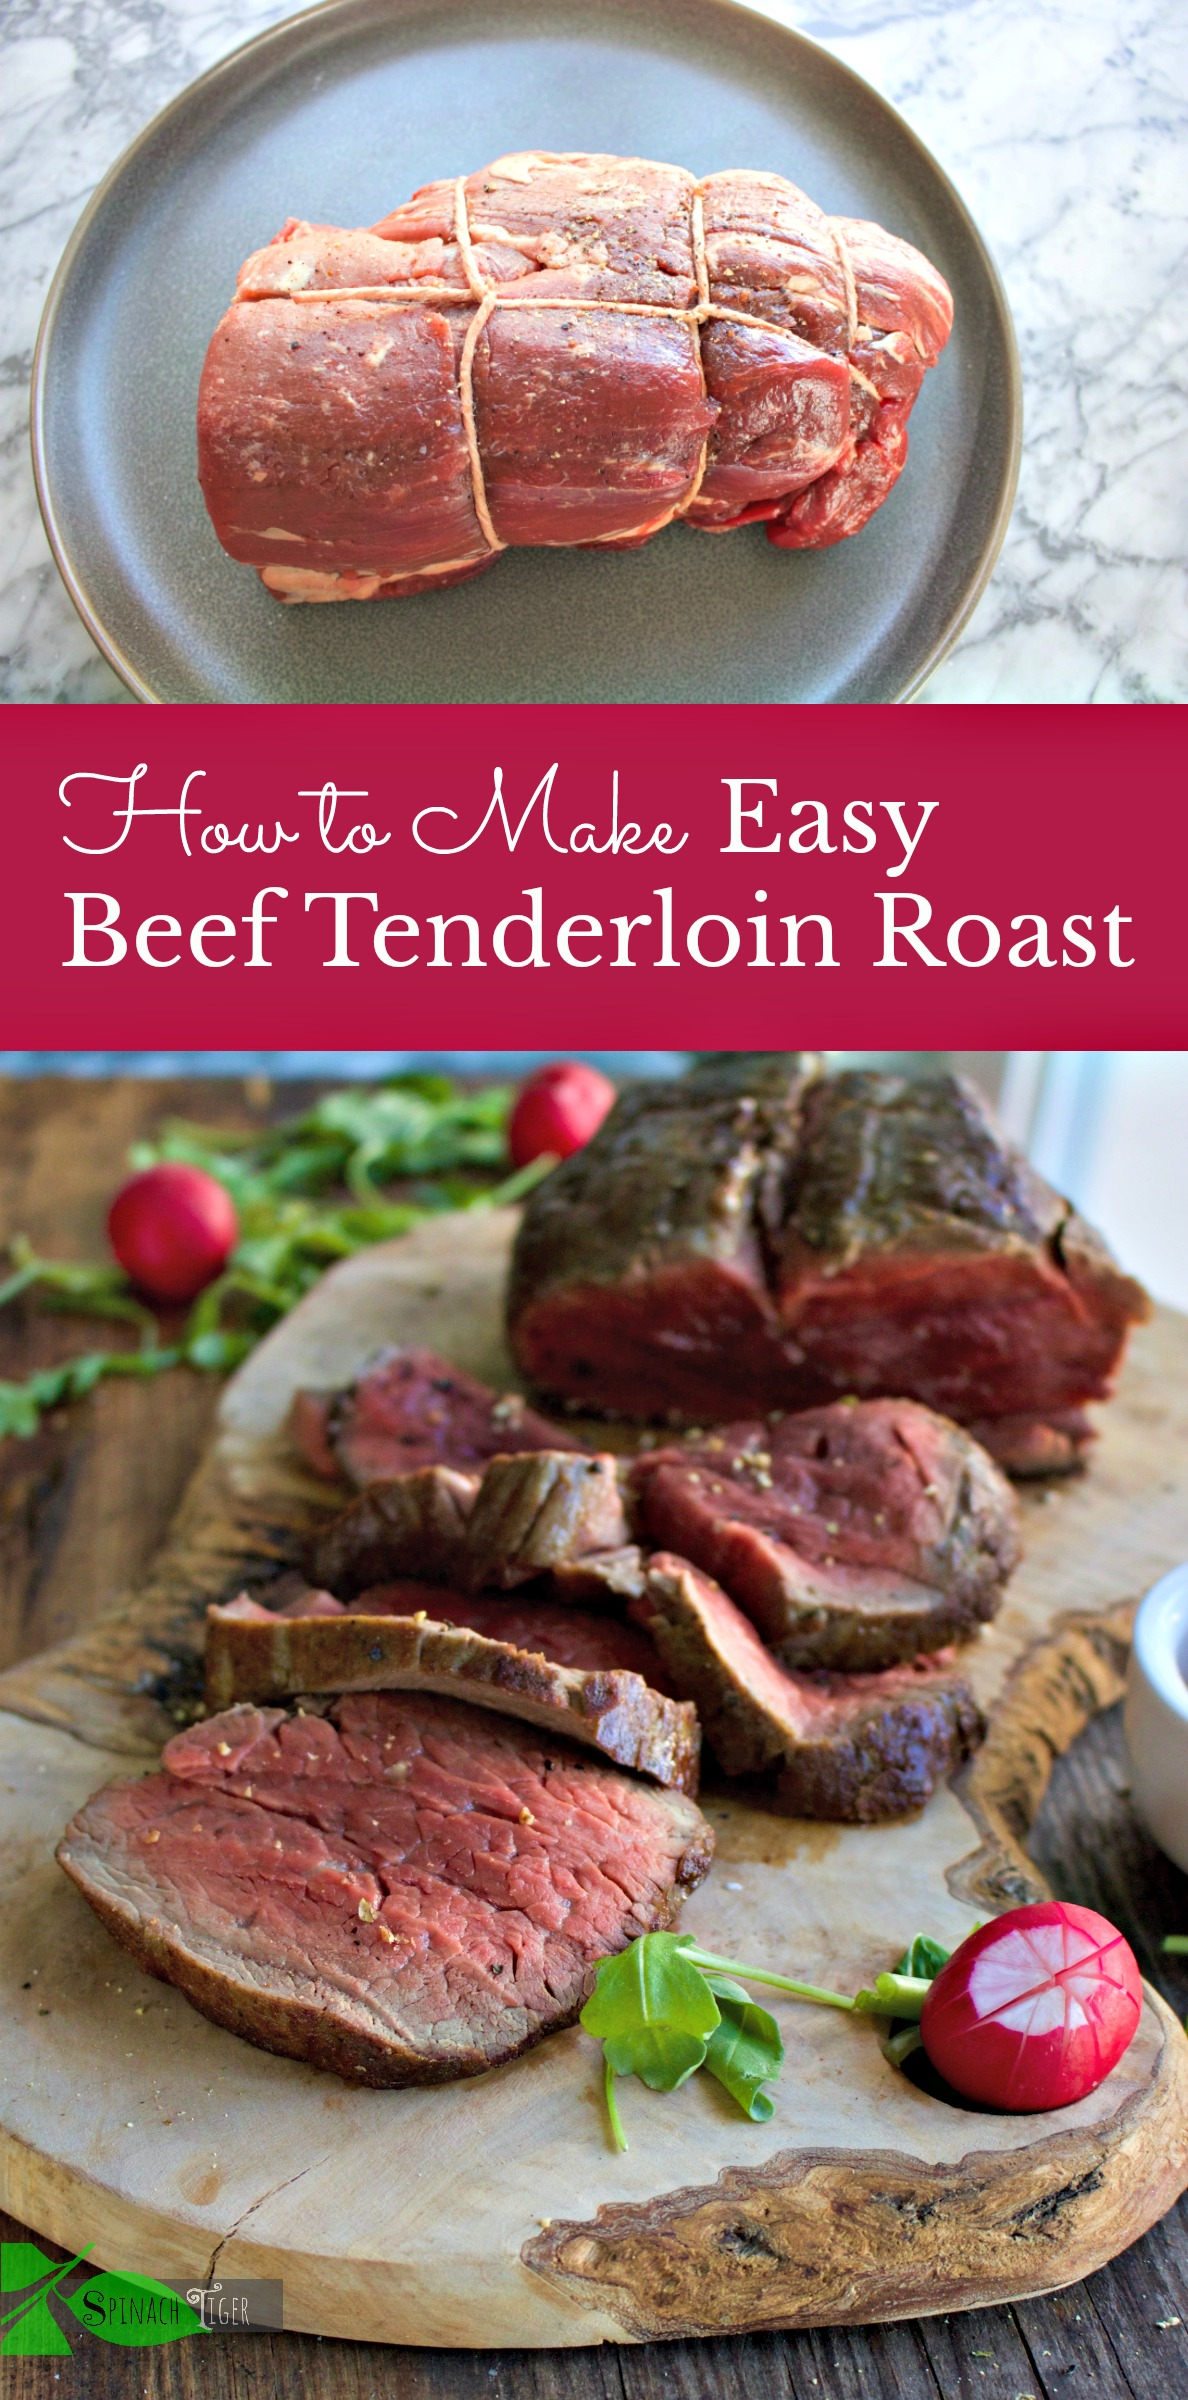 Easy Preparing Beef Tenderloin from Spinach Tiger